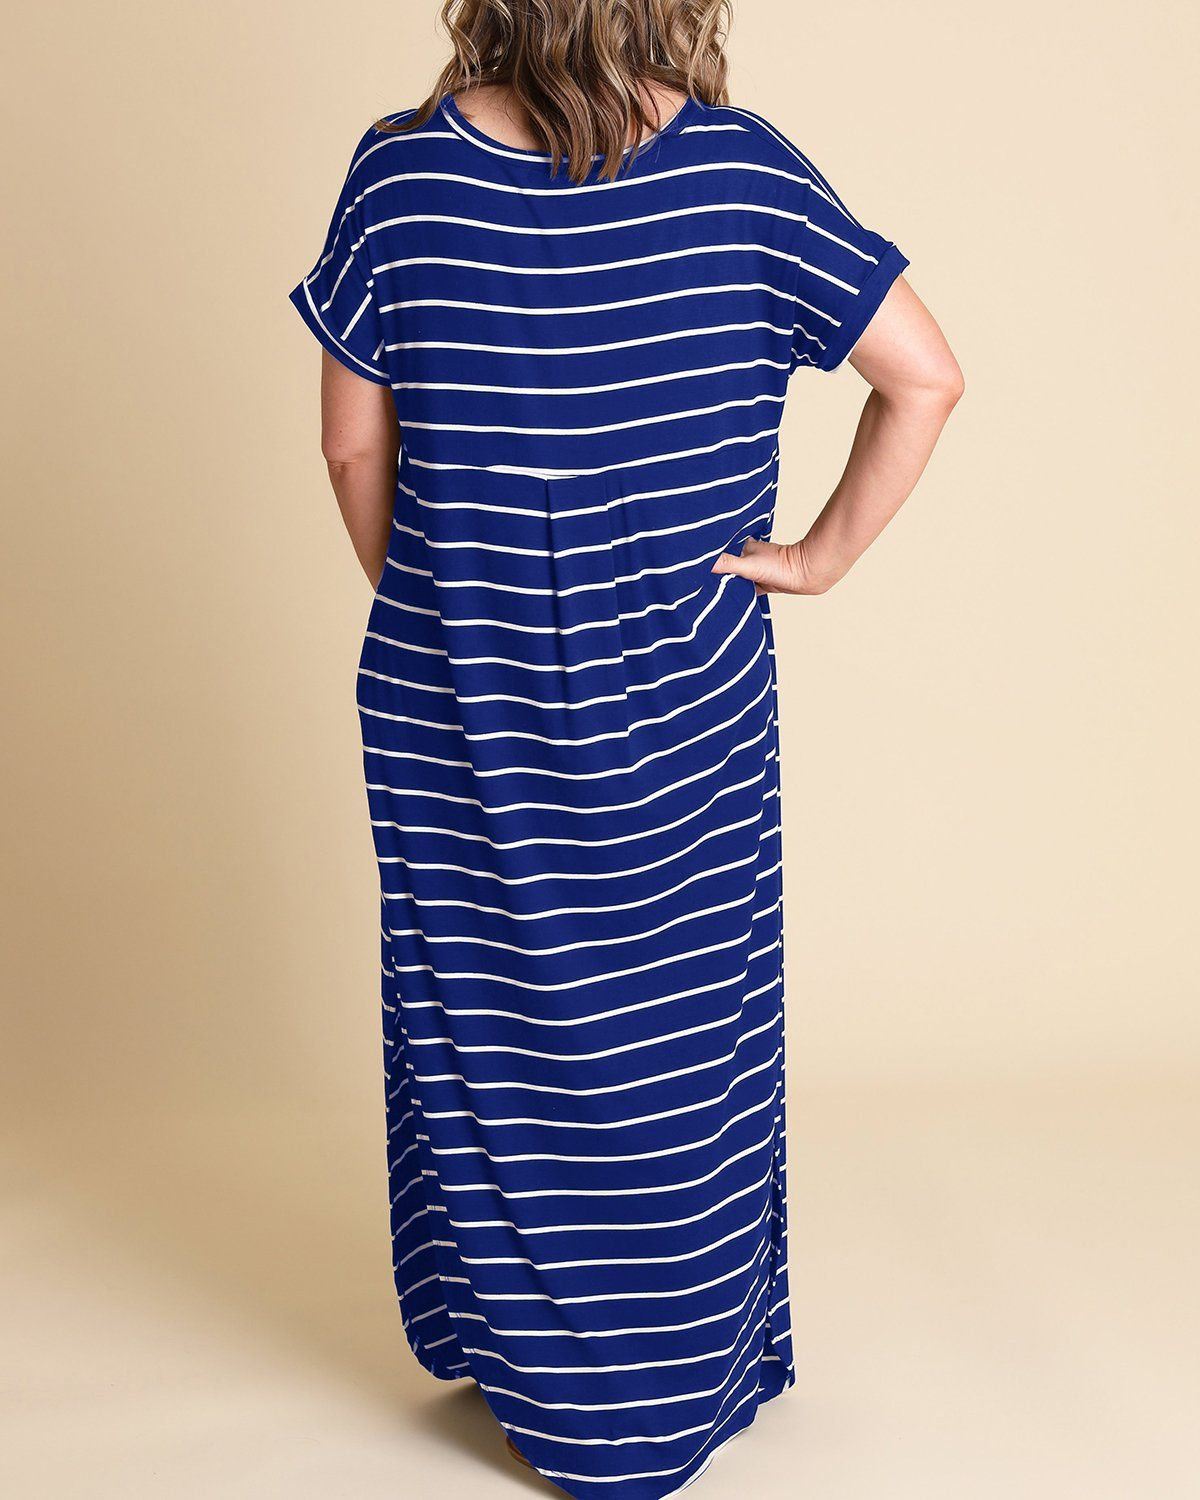 00a04c6519a Women Maternity Clothes - Rotita Women Striped Maxi Dress Plus Size Short  Sleeve Loose V Neck Maxi Dresses with Pockets XLarge Blue    More details  could be ...